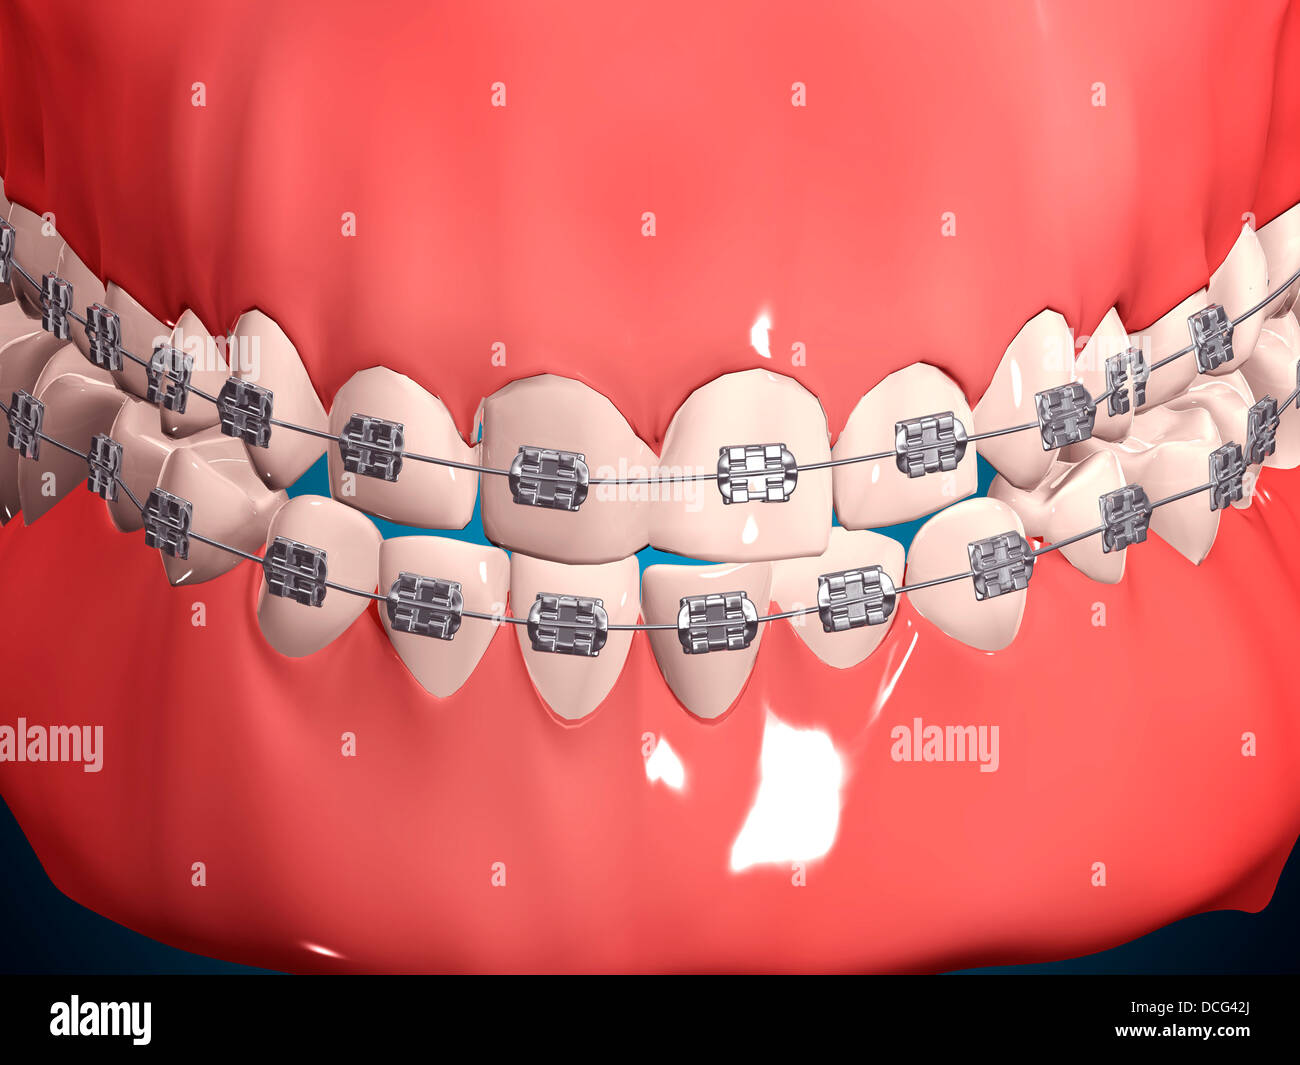 Medical Illustration Of Human Mouth Showing Teeth Gums And Metal